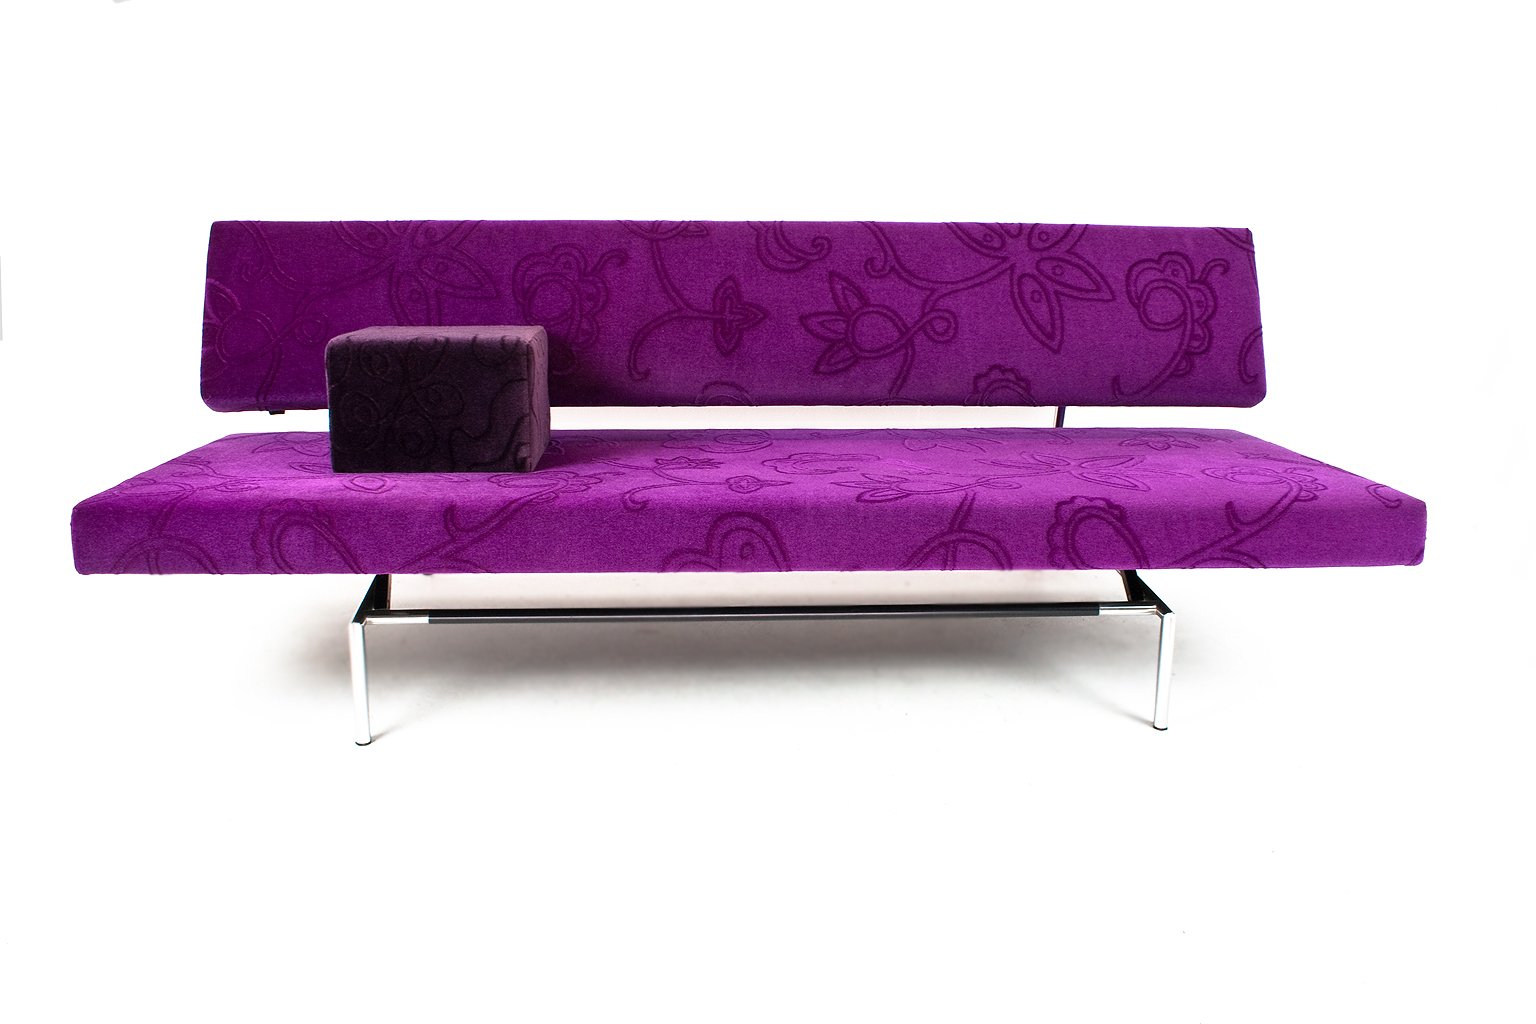 BR02 Sofa Daybed In Purple Velvet By Martin Visser For 't Spectrum For Sale  At Pamono